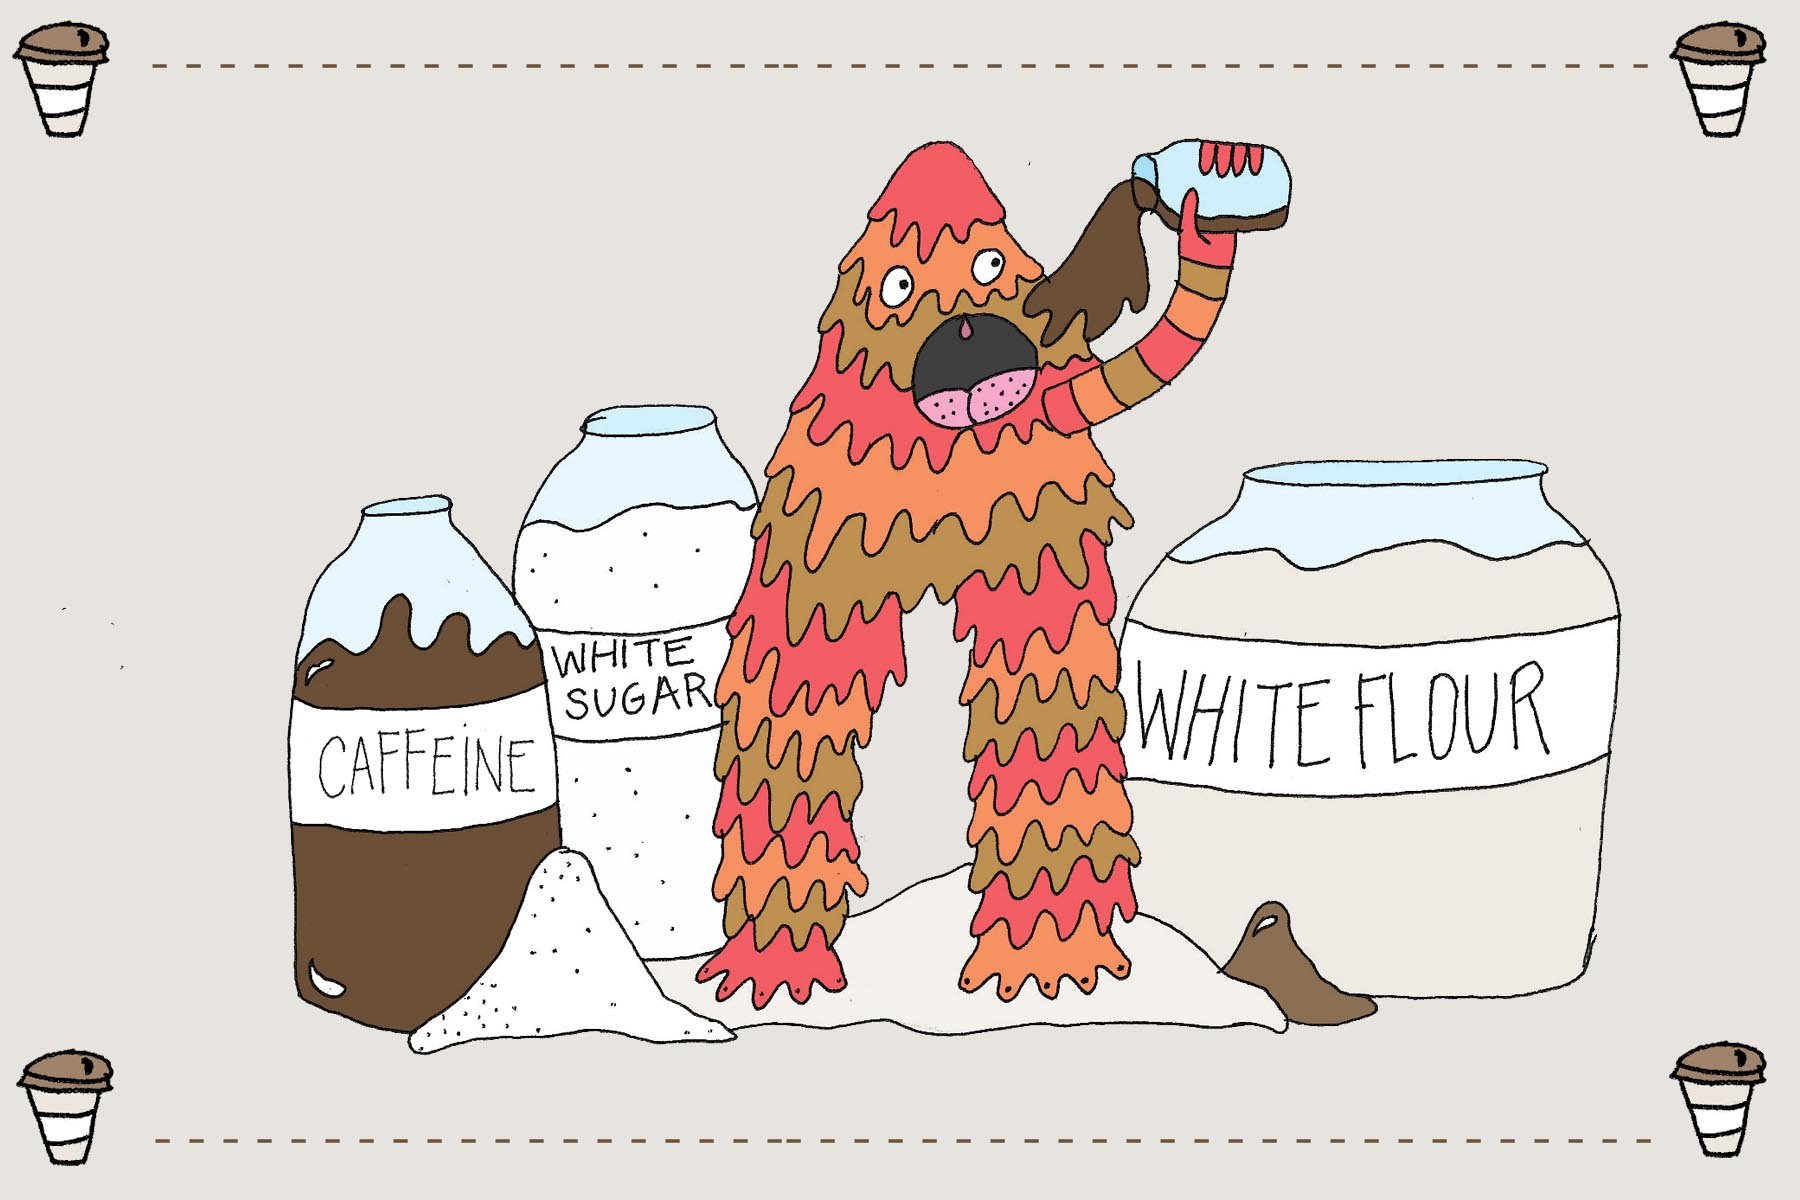 Acidic monster enjoying his favorite foods of caffeine, white flour and white sugar.